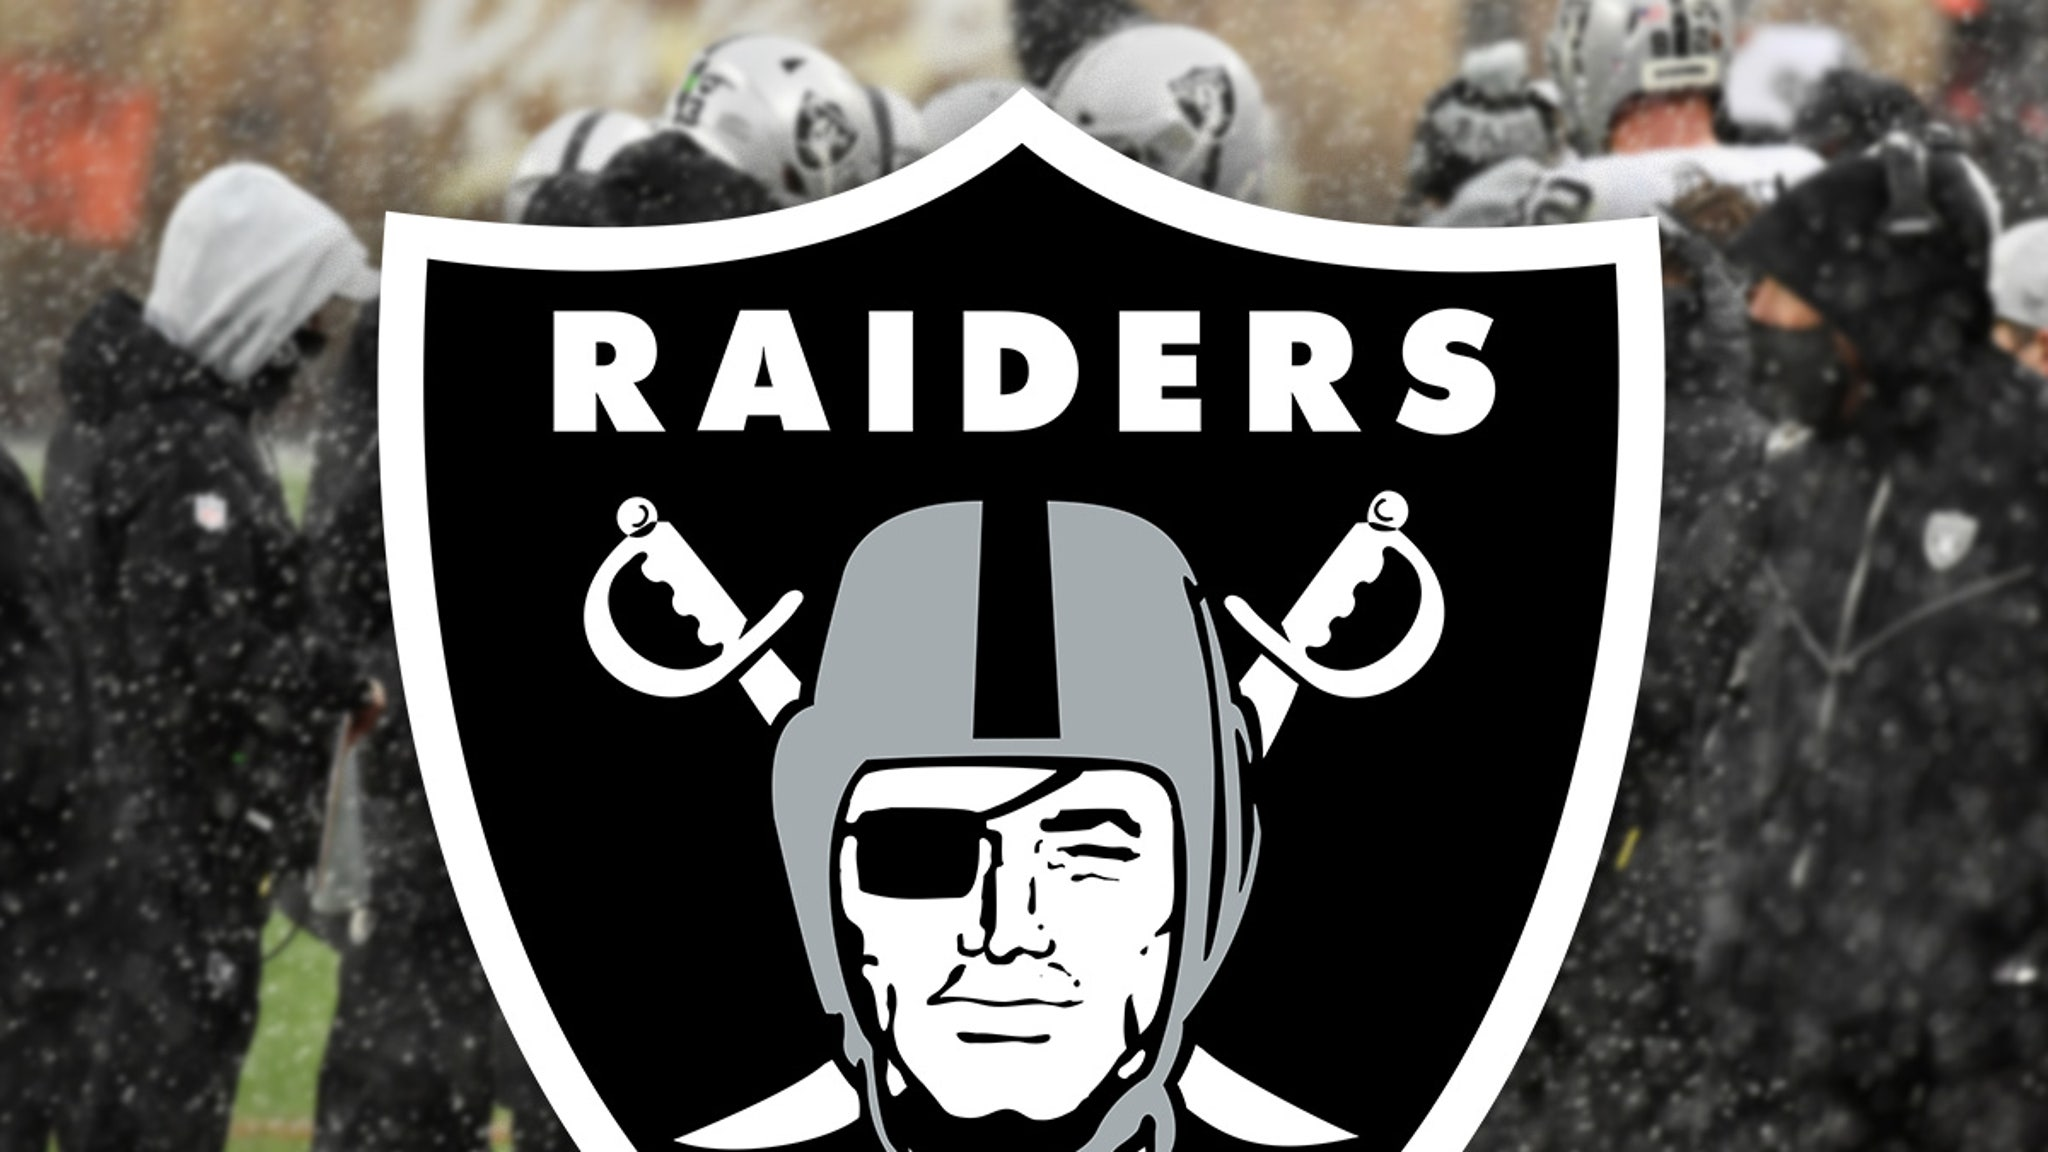 Las Vegas Raiders Hit with Huge Fine, Stripped of Draft Pick ... Over COVID Violations